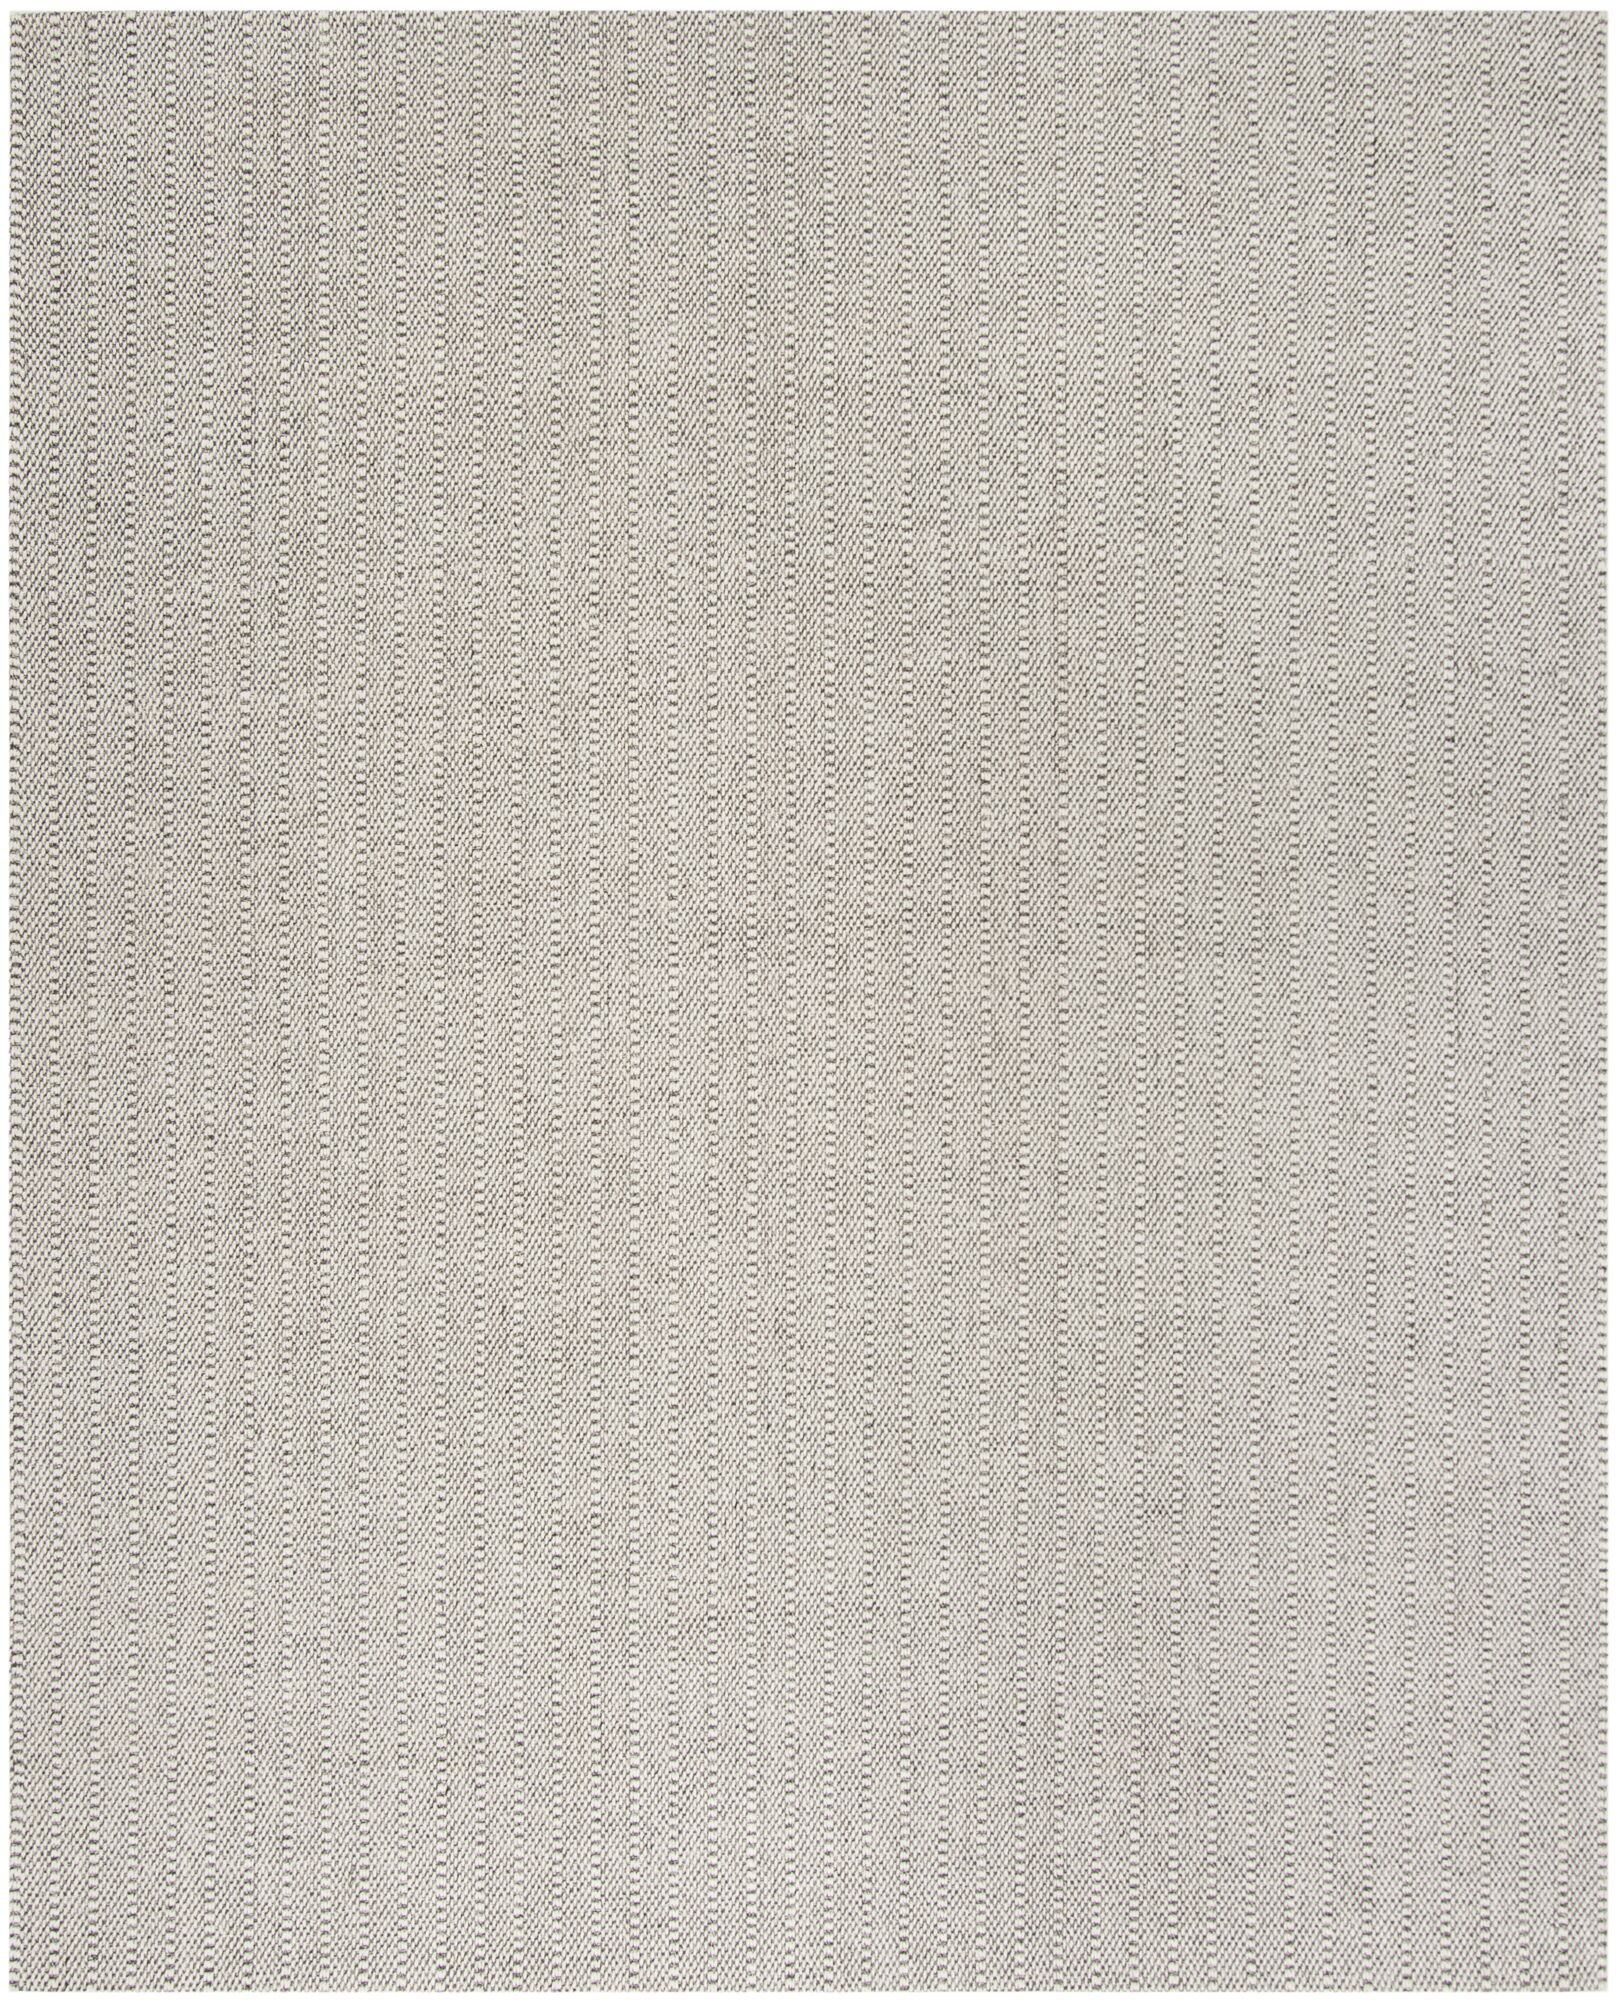 Cherif Versatile Hand Tufted Gray Area Rug Rug Size: Rectangle 8' x 10'